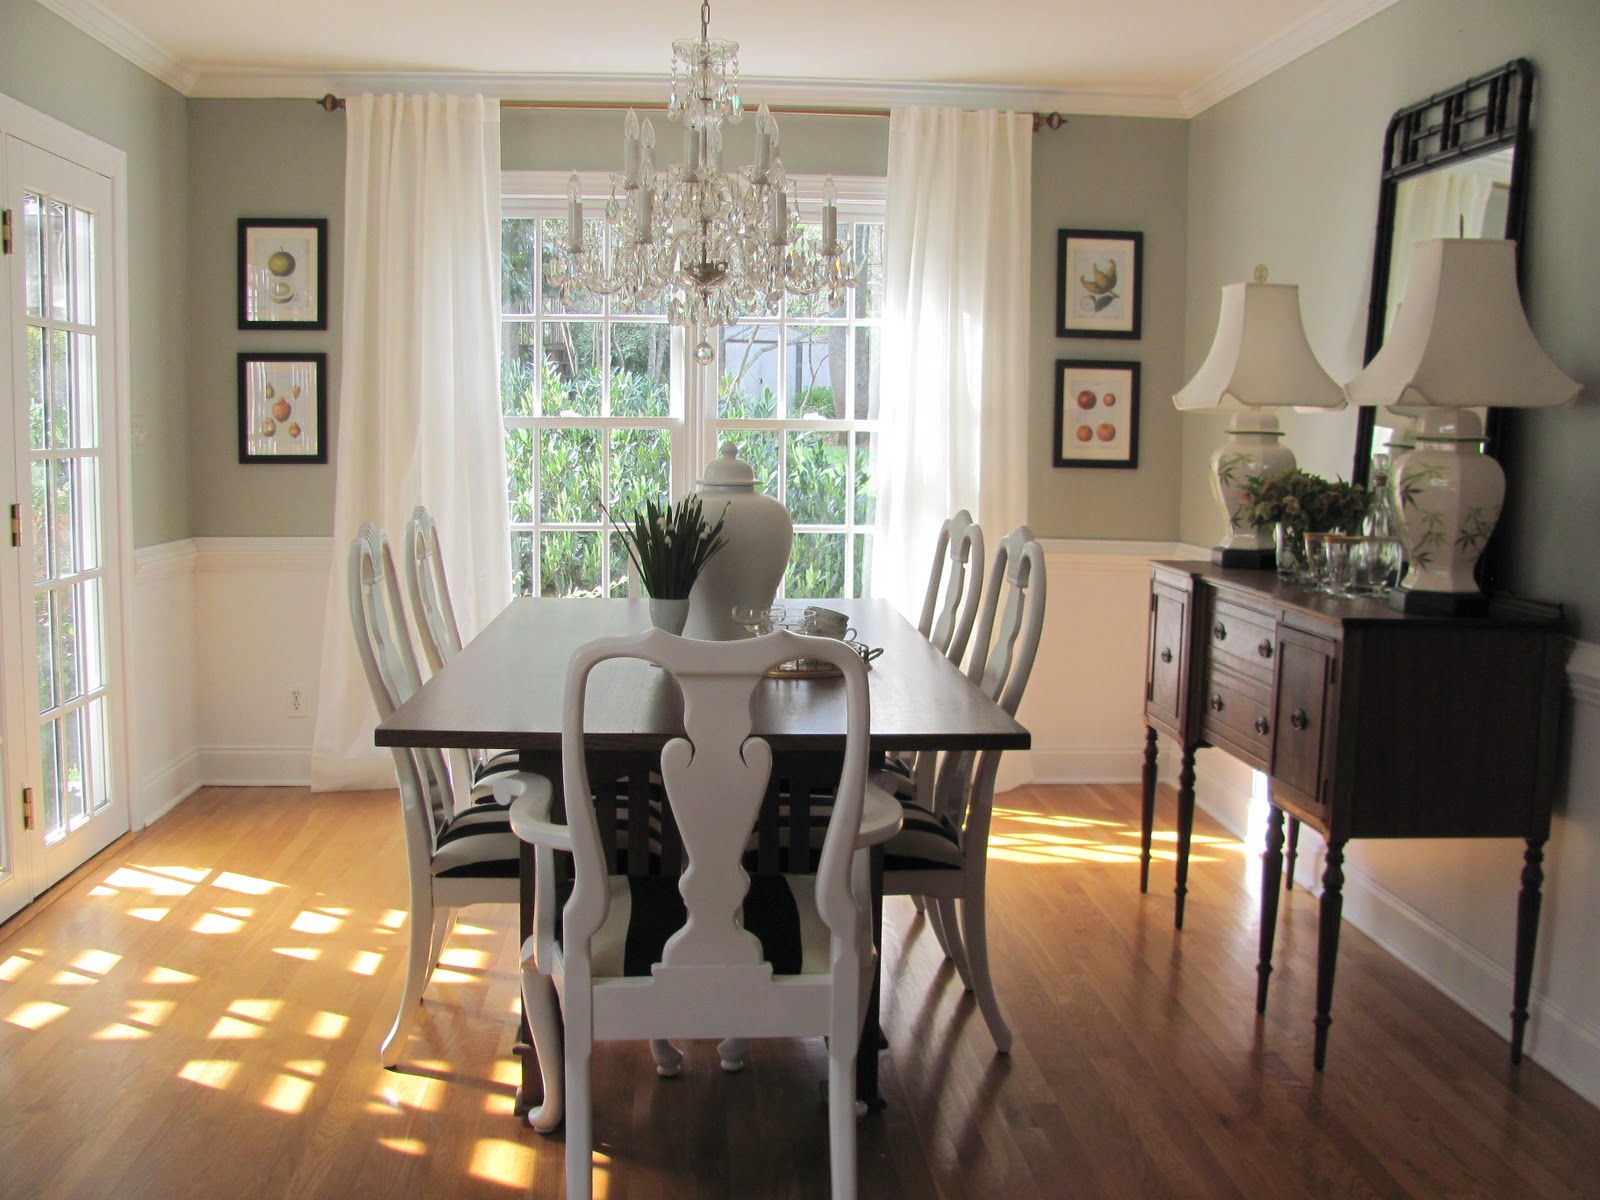 Chair Rail Ideas For Dining Room Part - 42: Standard Dining-room. Chair Rail Height Ideas